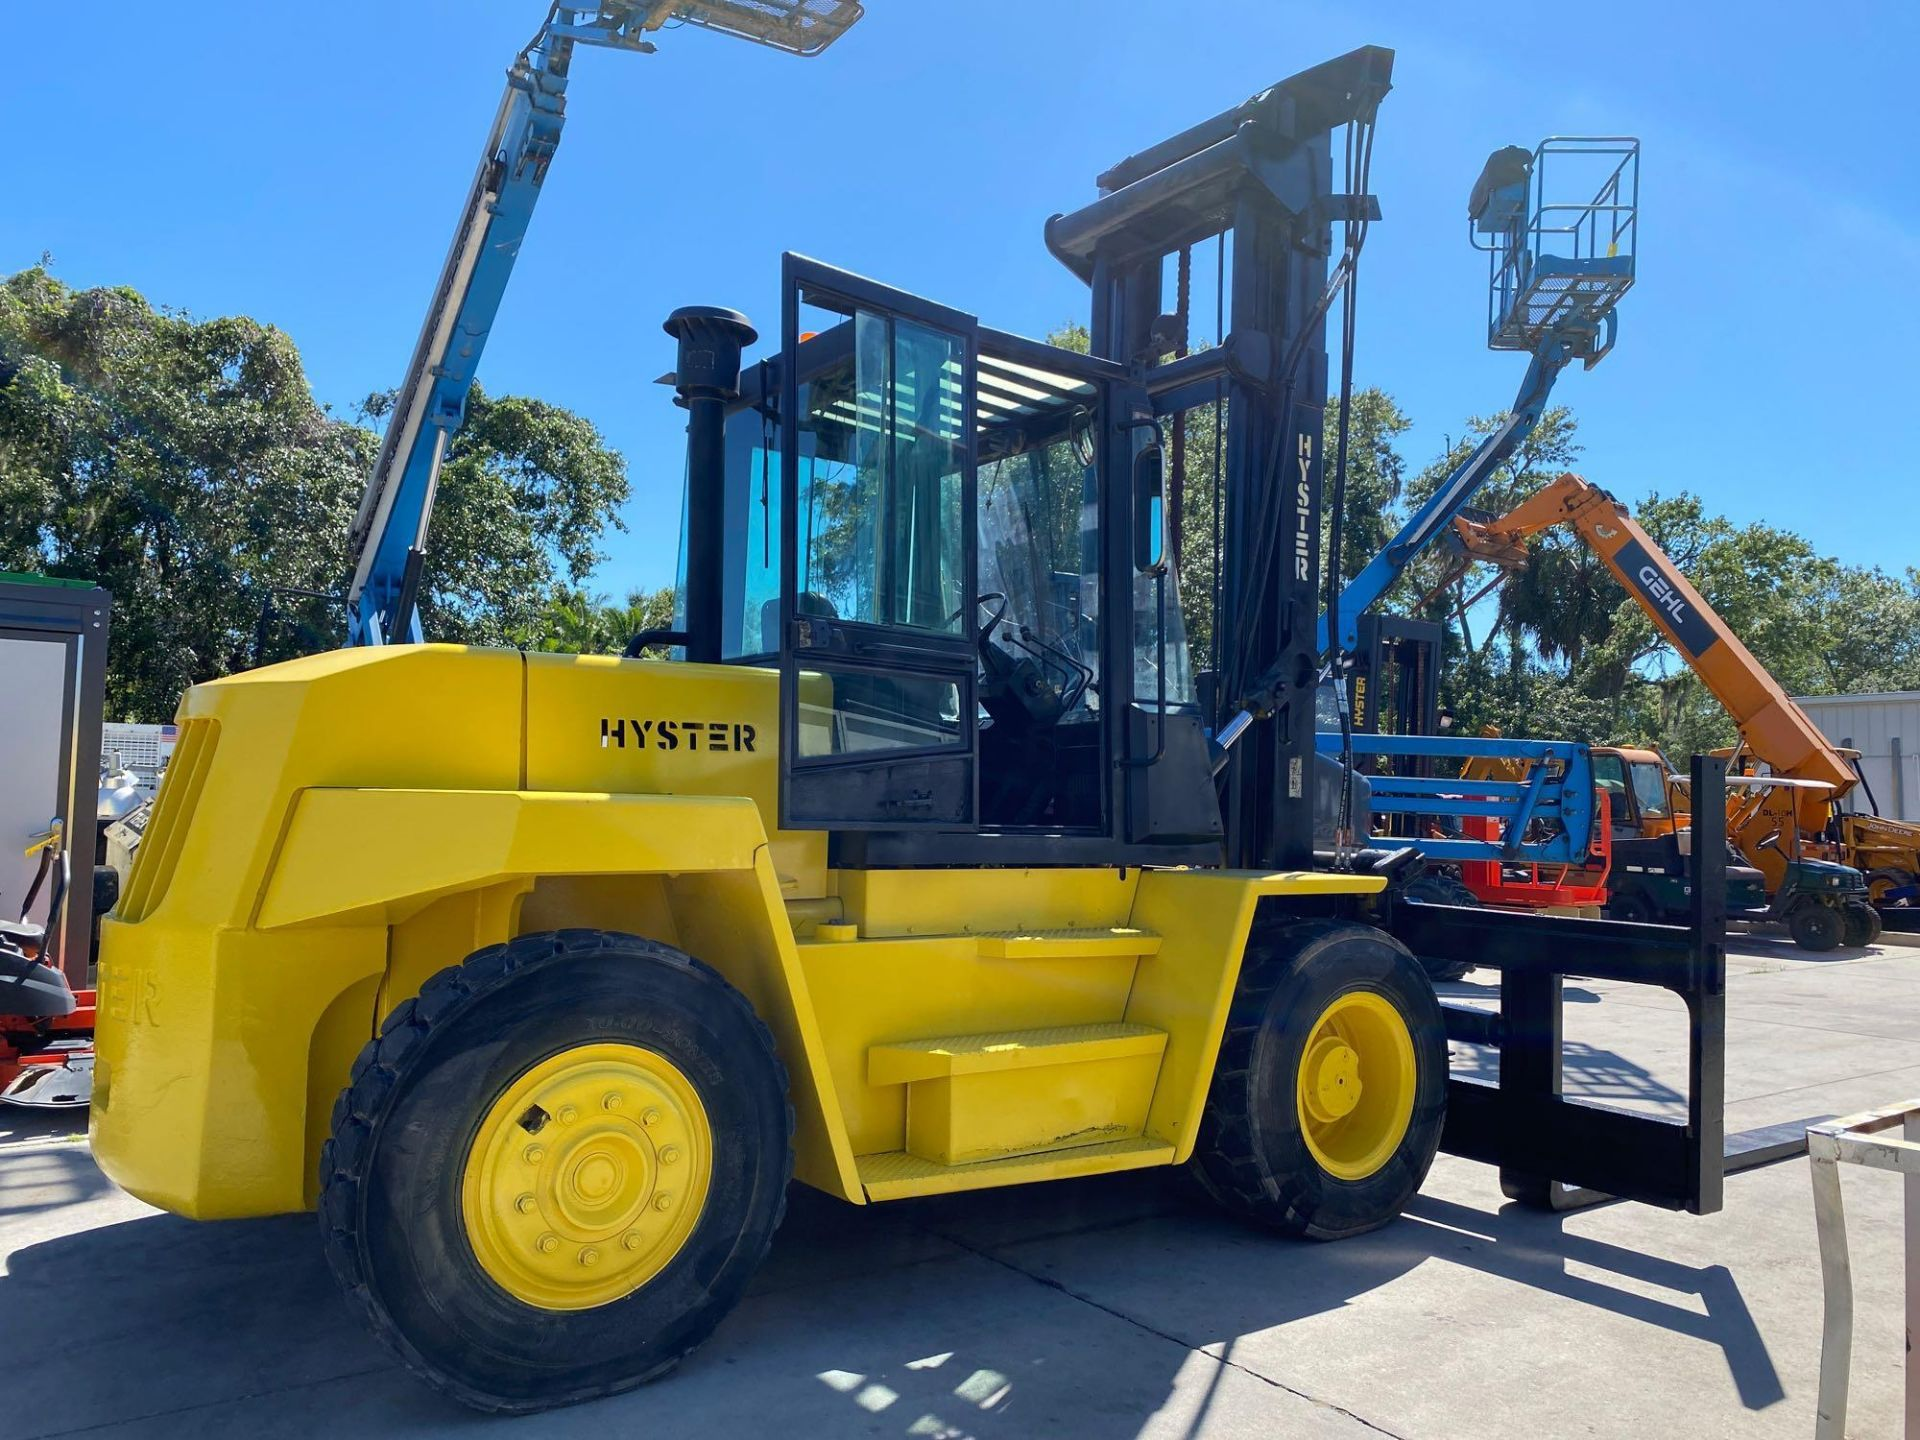 """Lot 13 - HYSTER DIESEL FORKLIFT MODEL H190XL2, APPROX. 19,000 LB CAPACITY, 212.6"""" HEIGHT CAPACITY, RUNS AND O"""